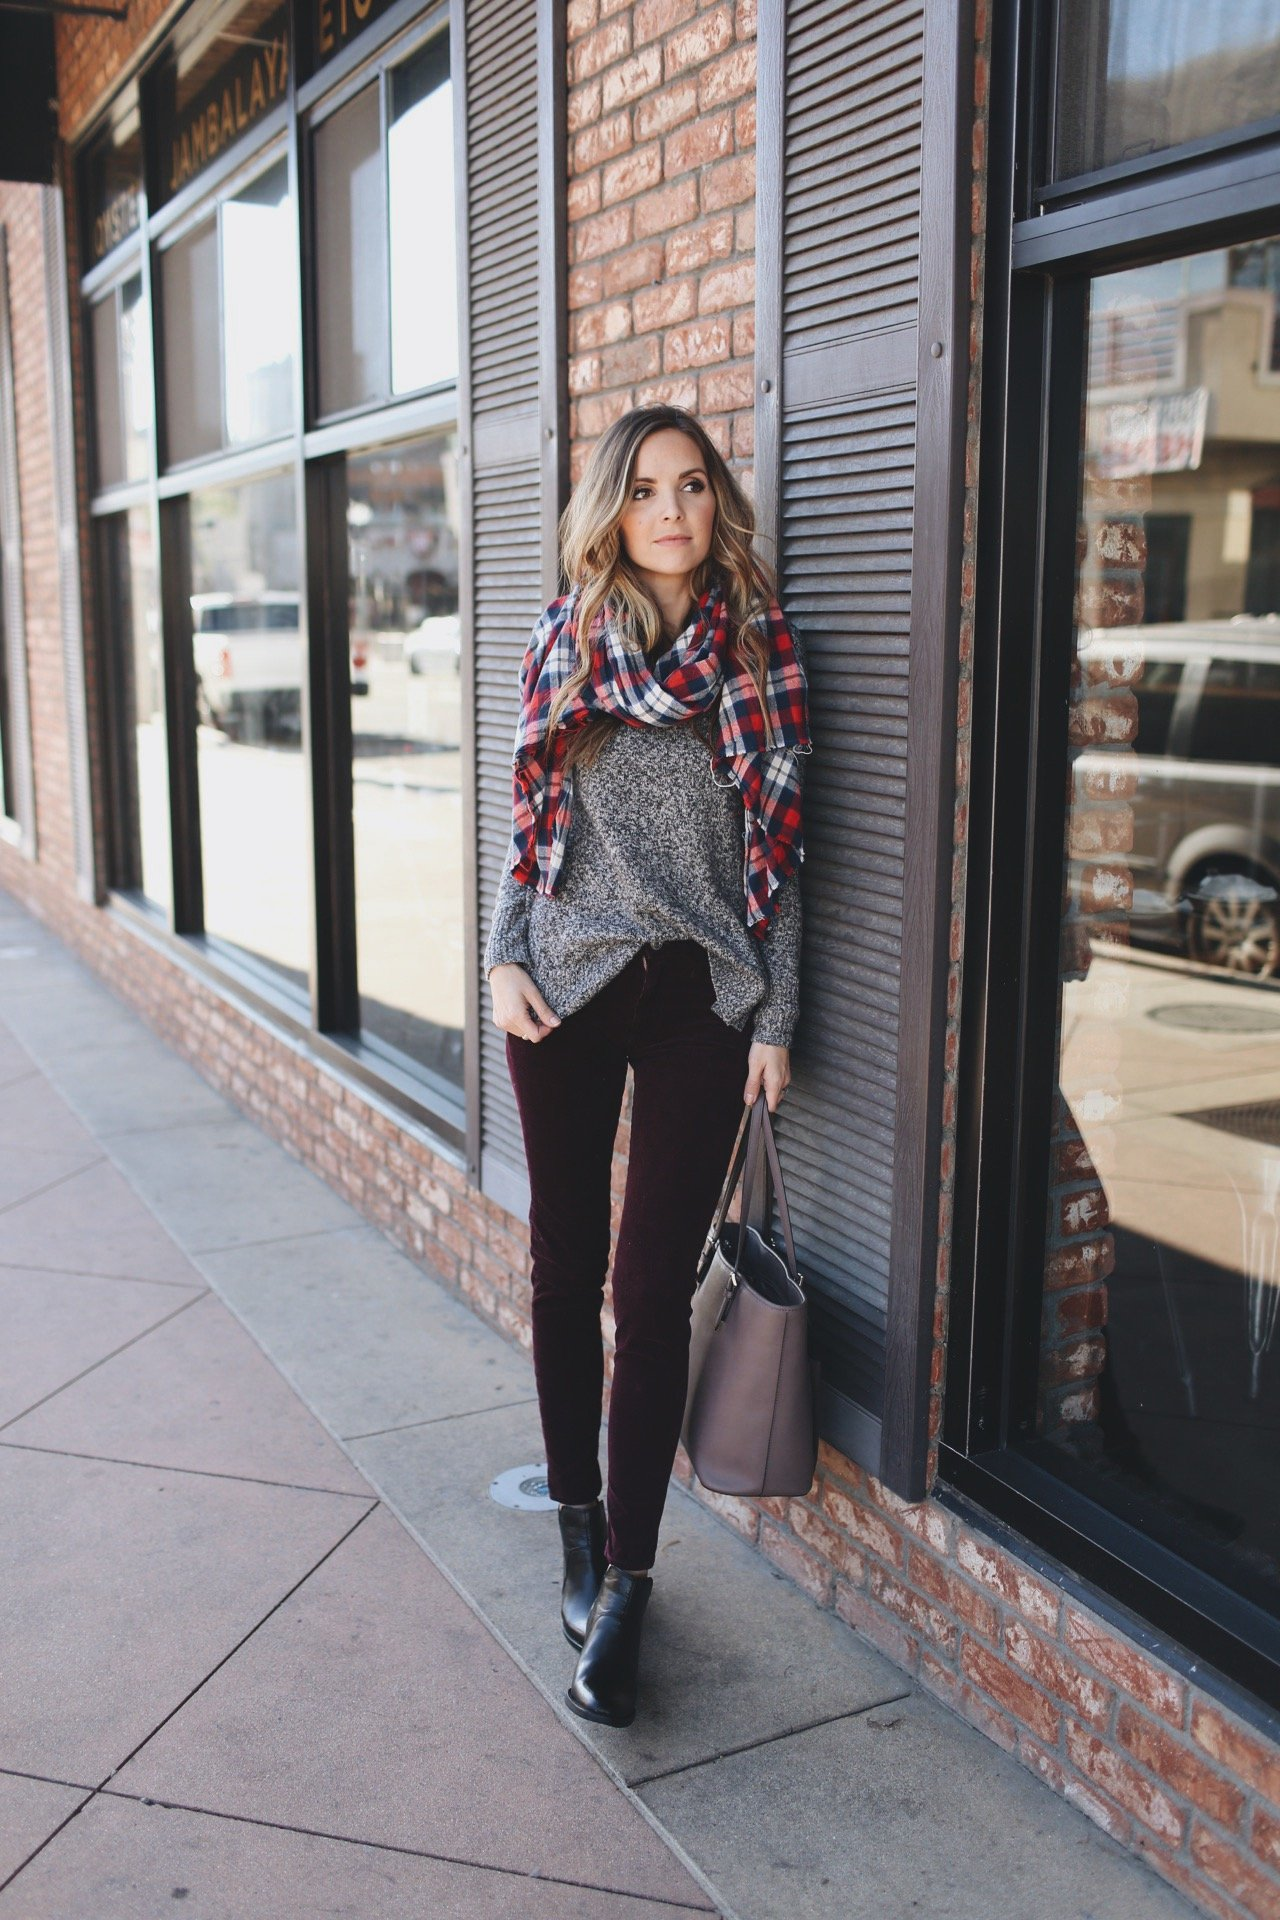 Merrick's Art Casual Holiday Look with American Eagle